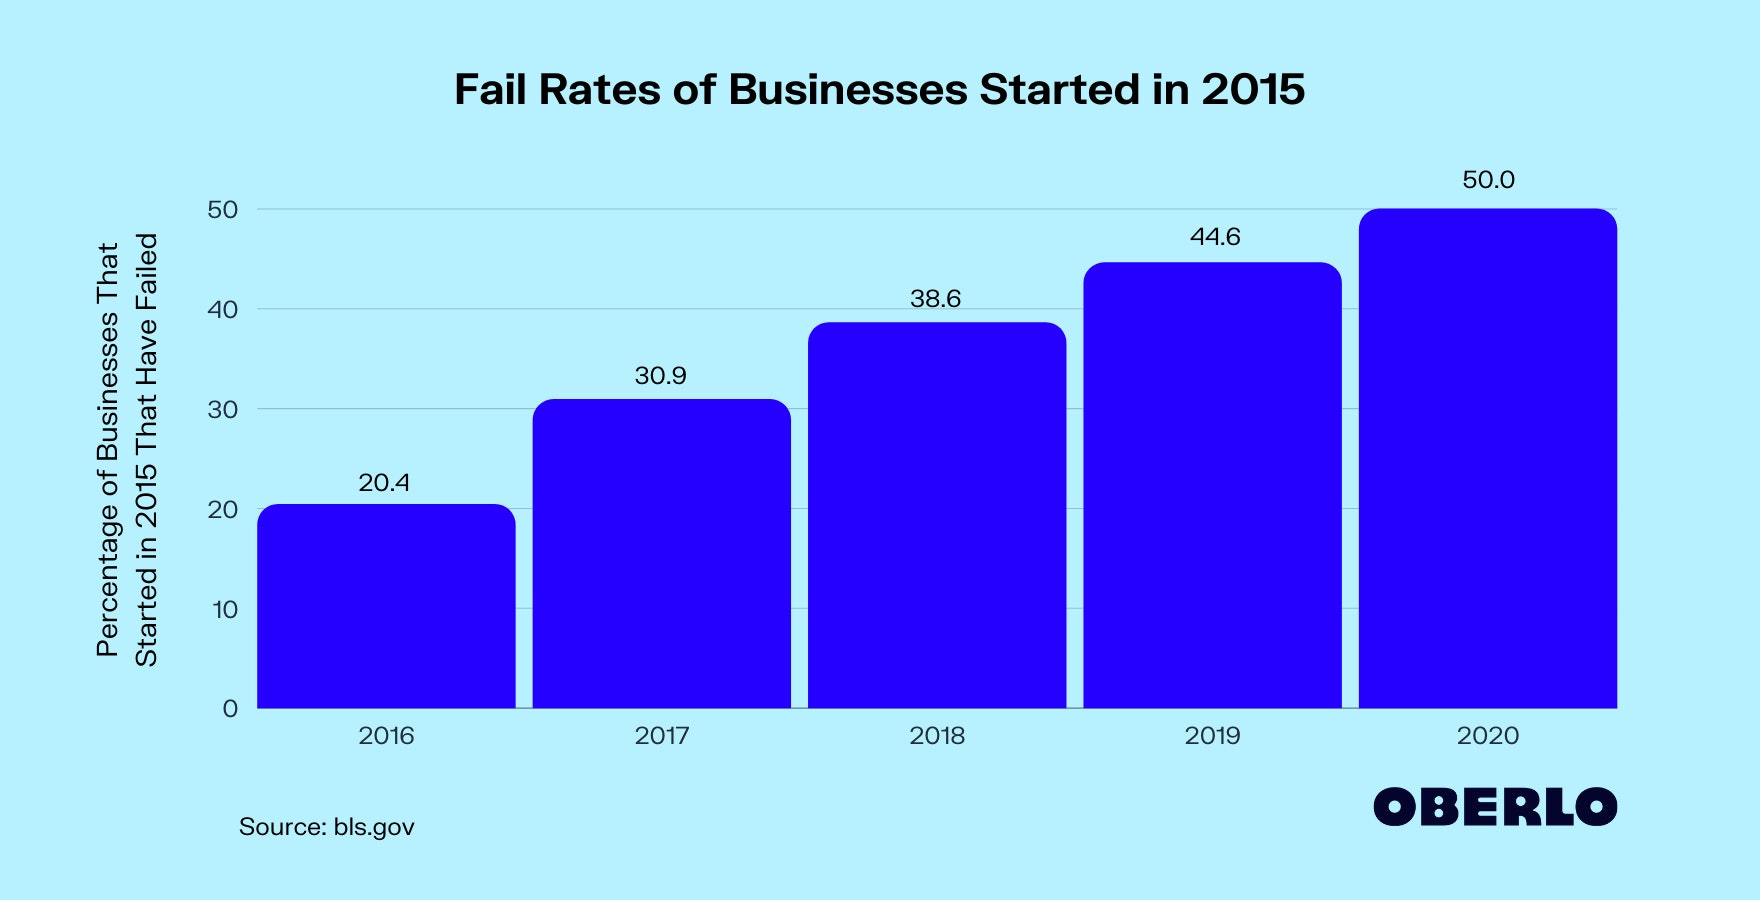 Percentage of Businesses That Fail